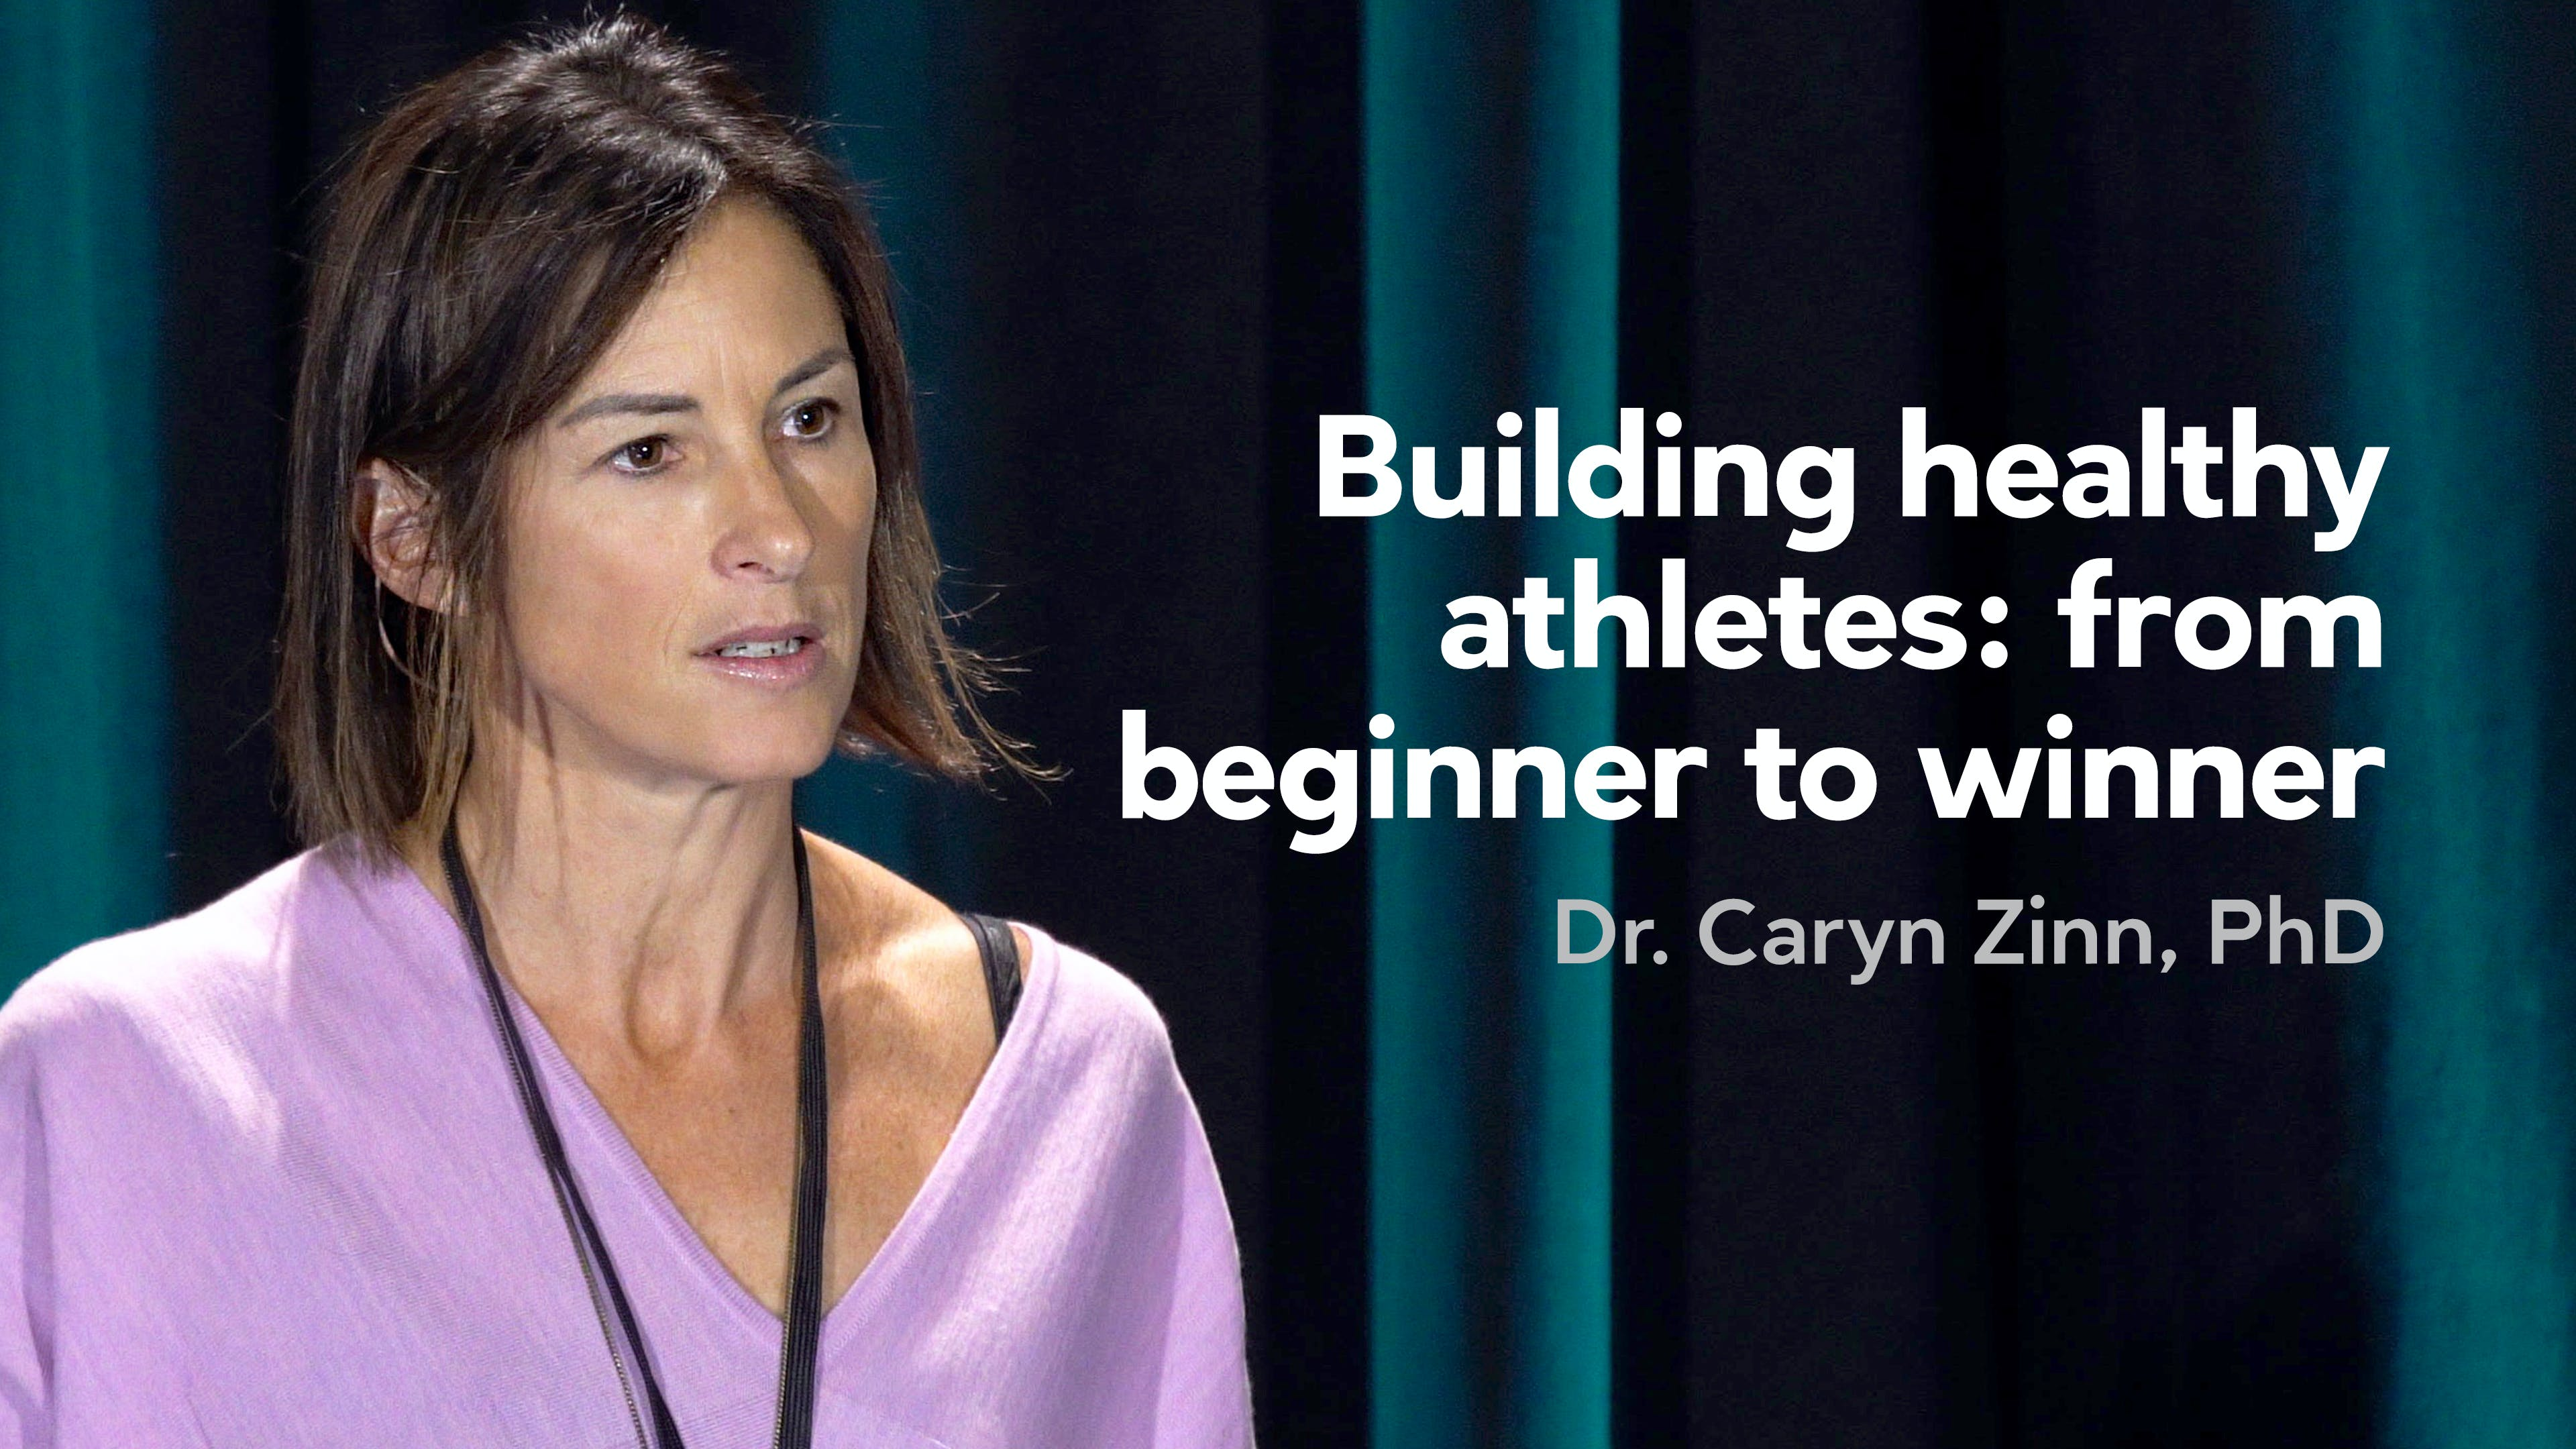 Building healthy athletes: from beginner to winner